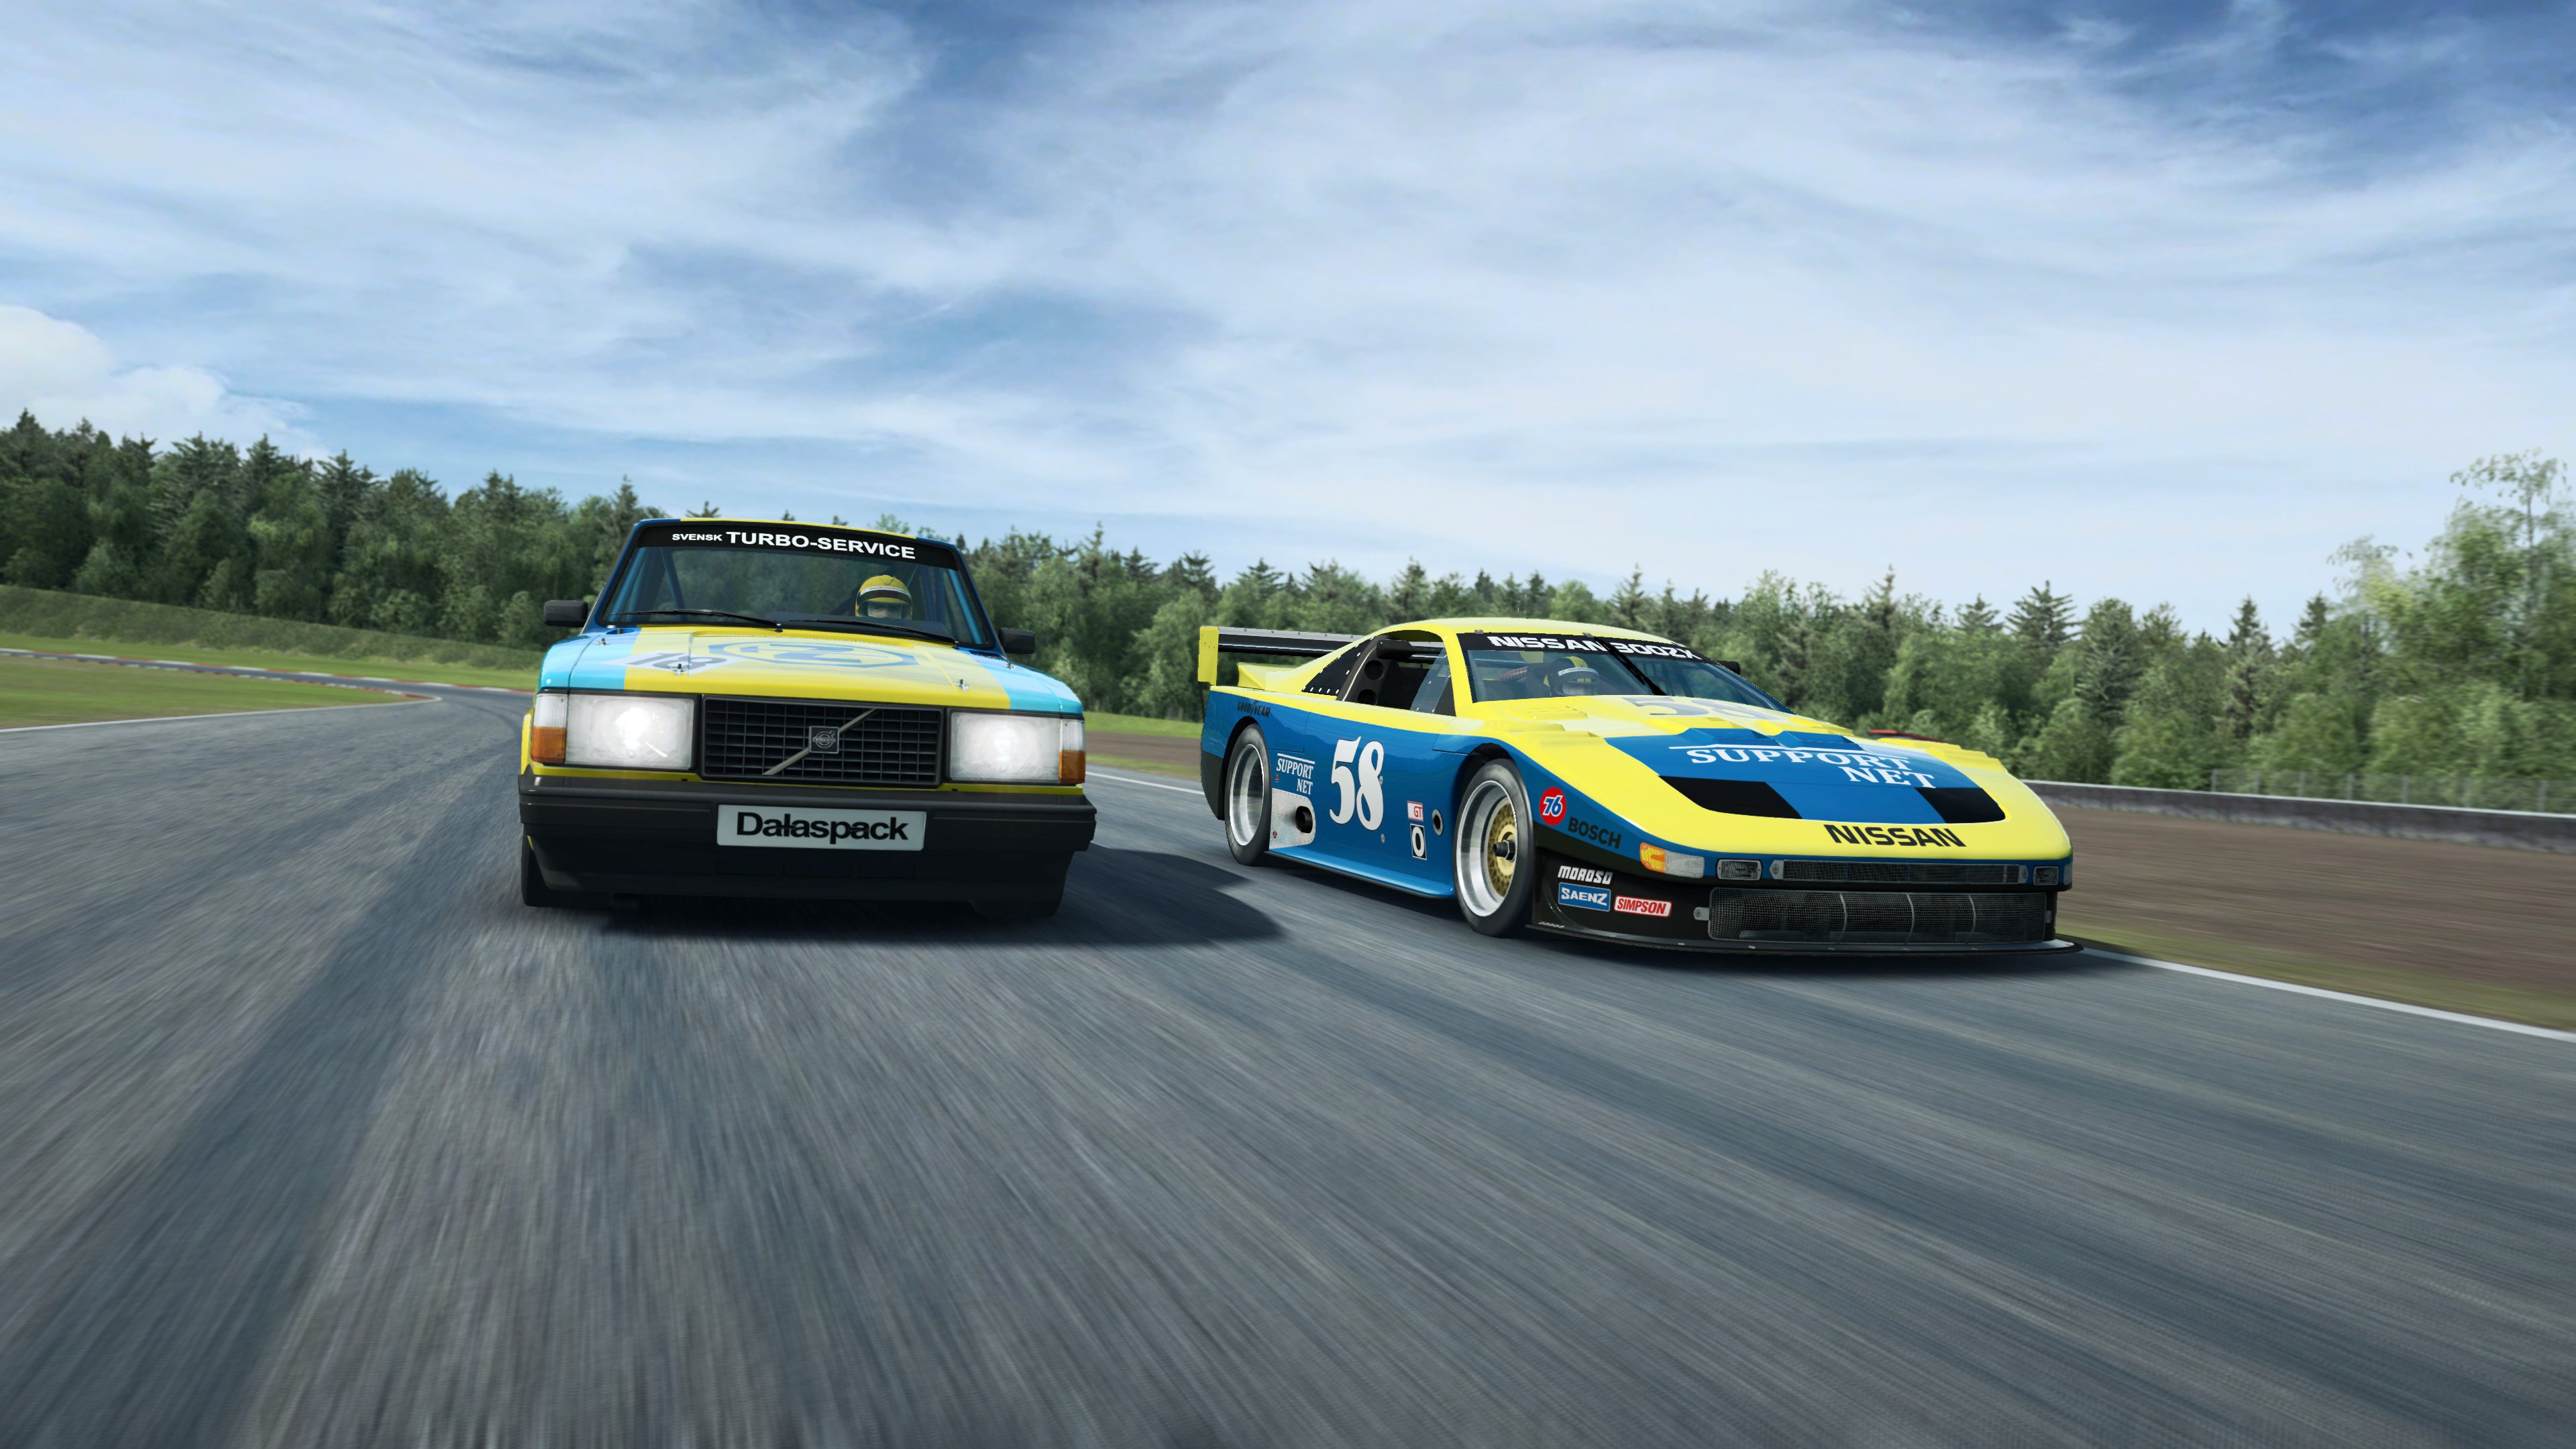 RaceRoom Volvo and Nissan close up front